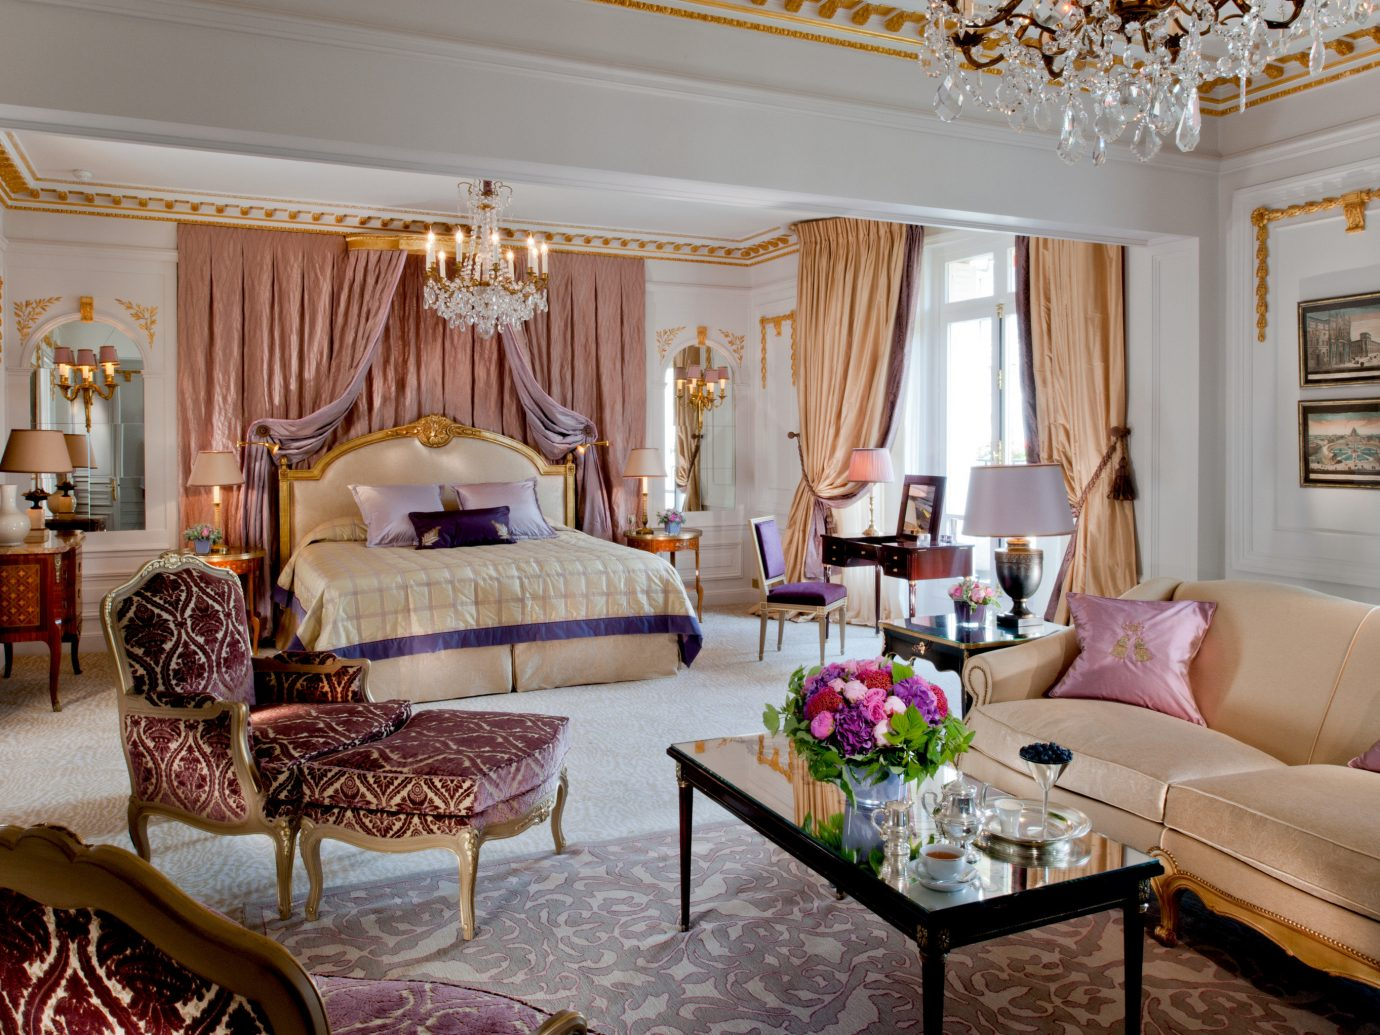 Hotels Luxury Travel indoor room wall Living sofa floor ceiling living room property estate furniture interior design Suite home mansion real estate Villa decorated cottage area flat containing